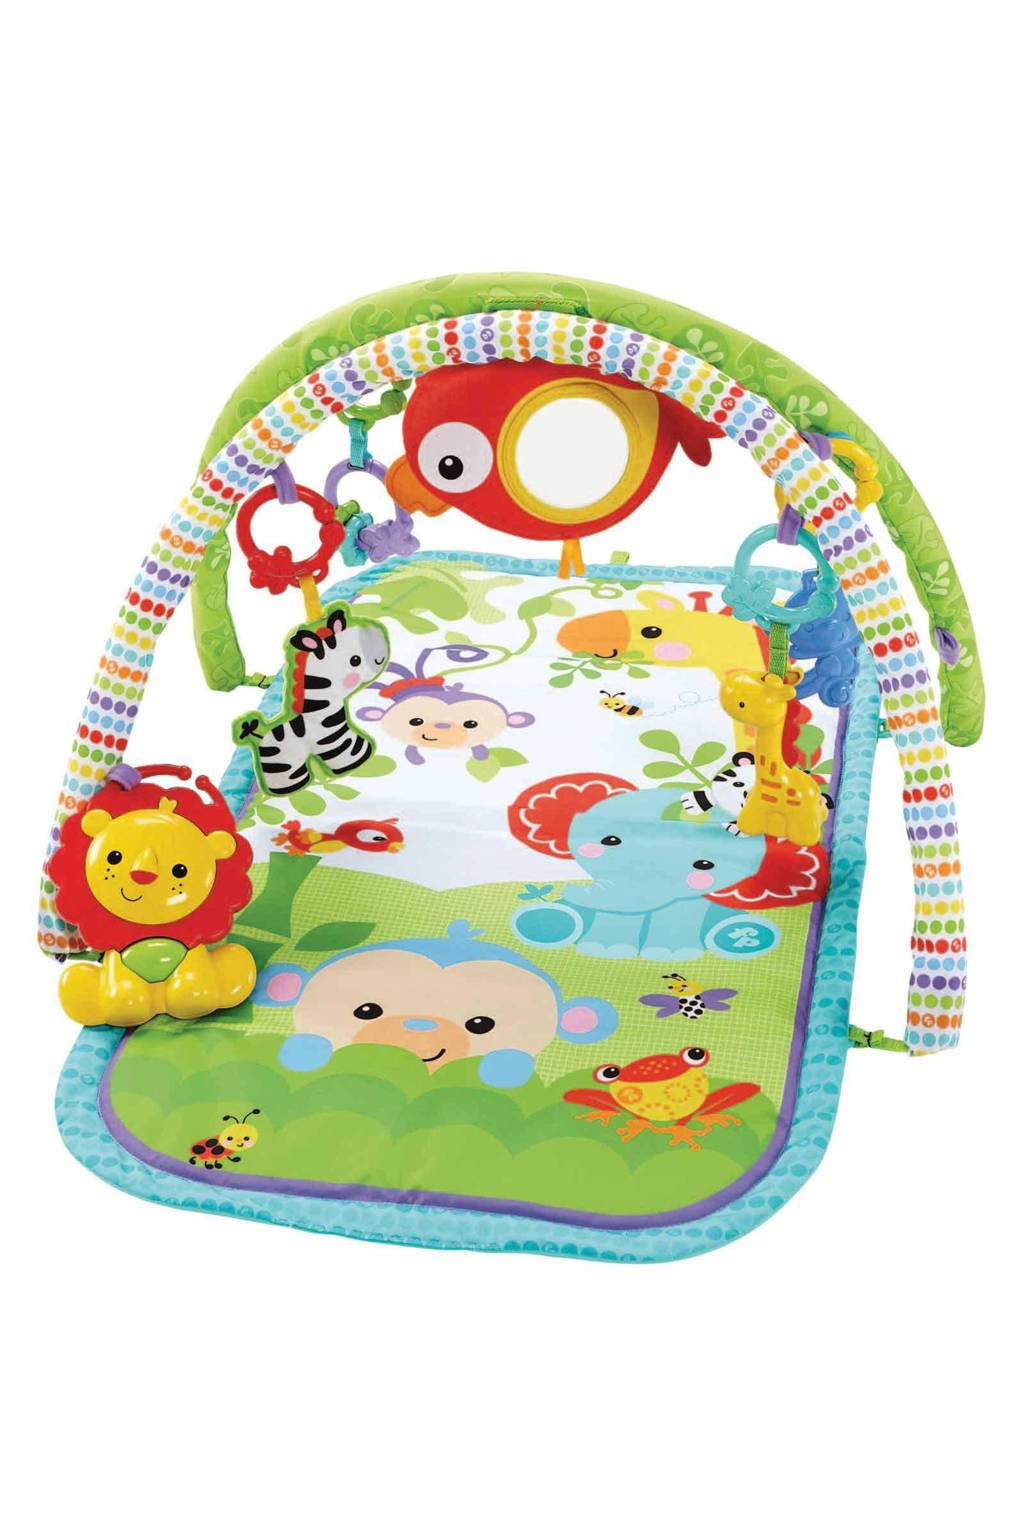 Fisher-Price 3 in 1 muzikale babygym